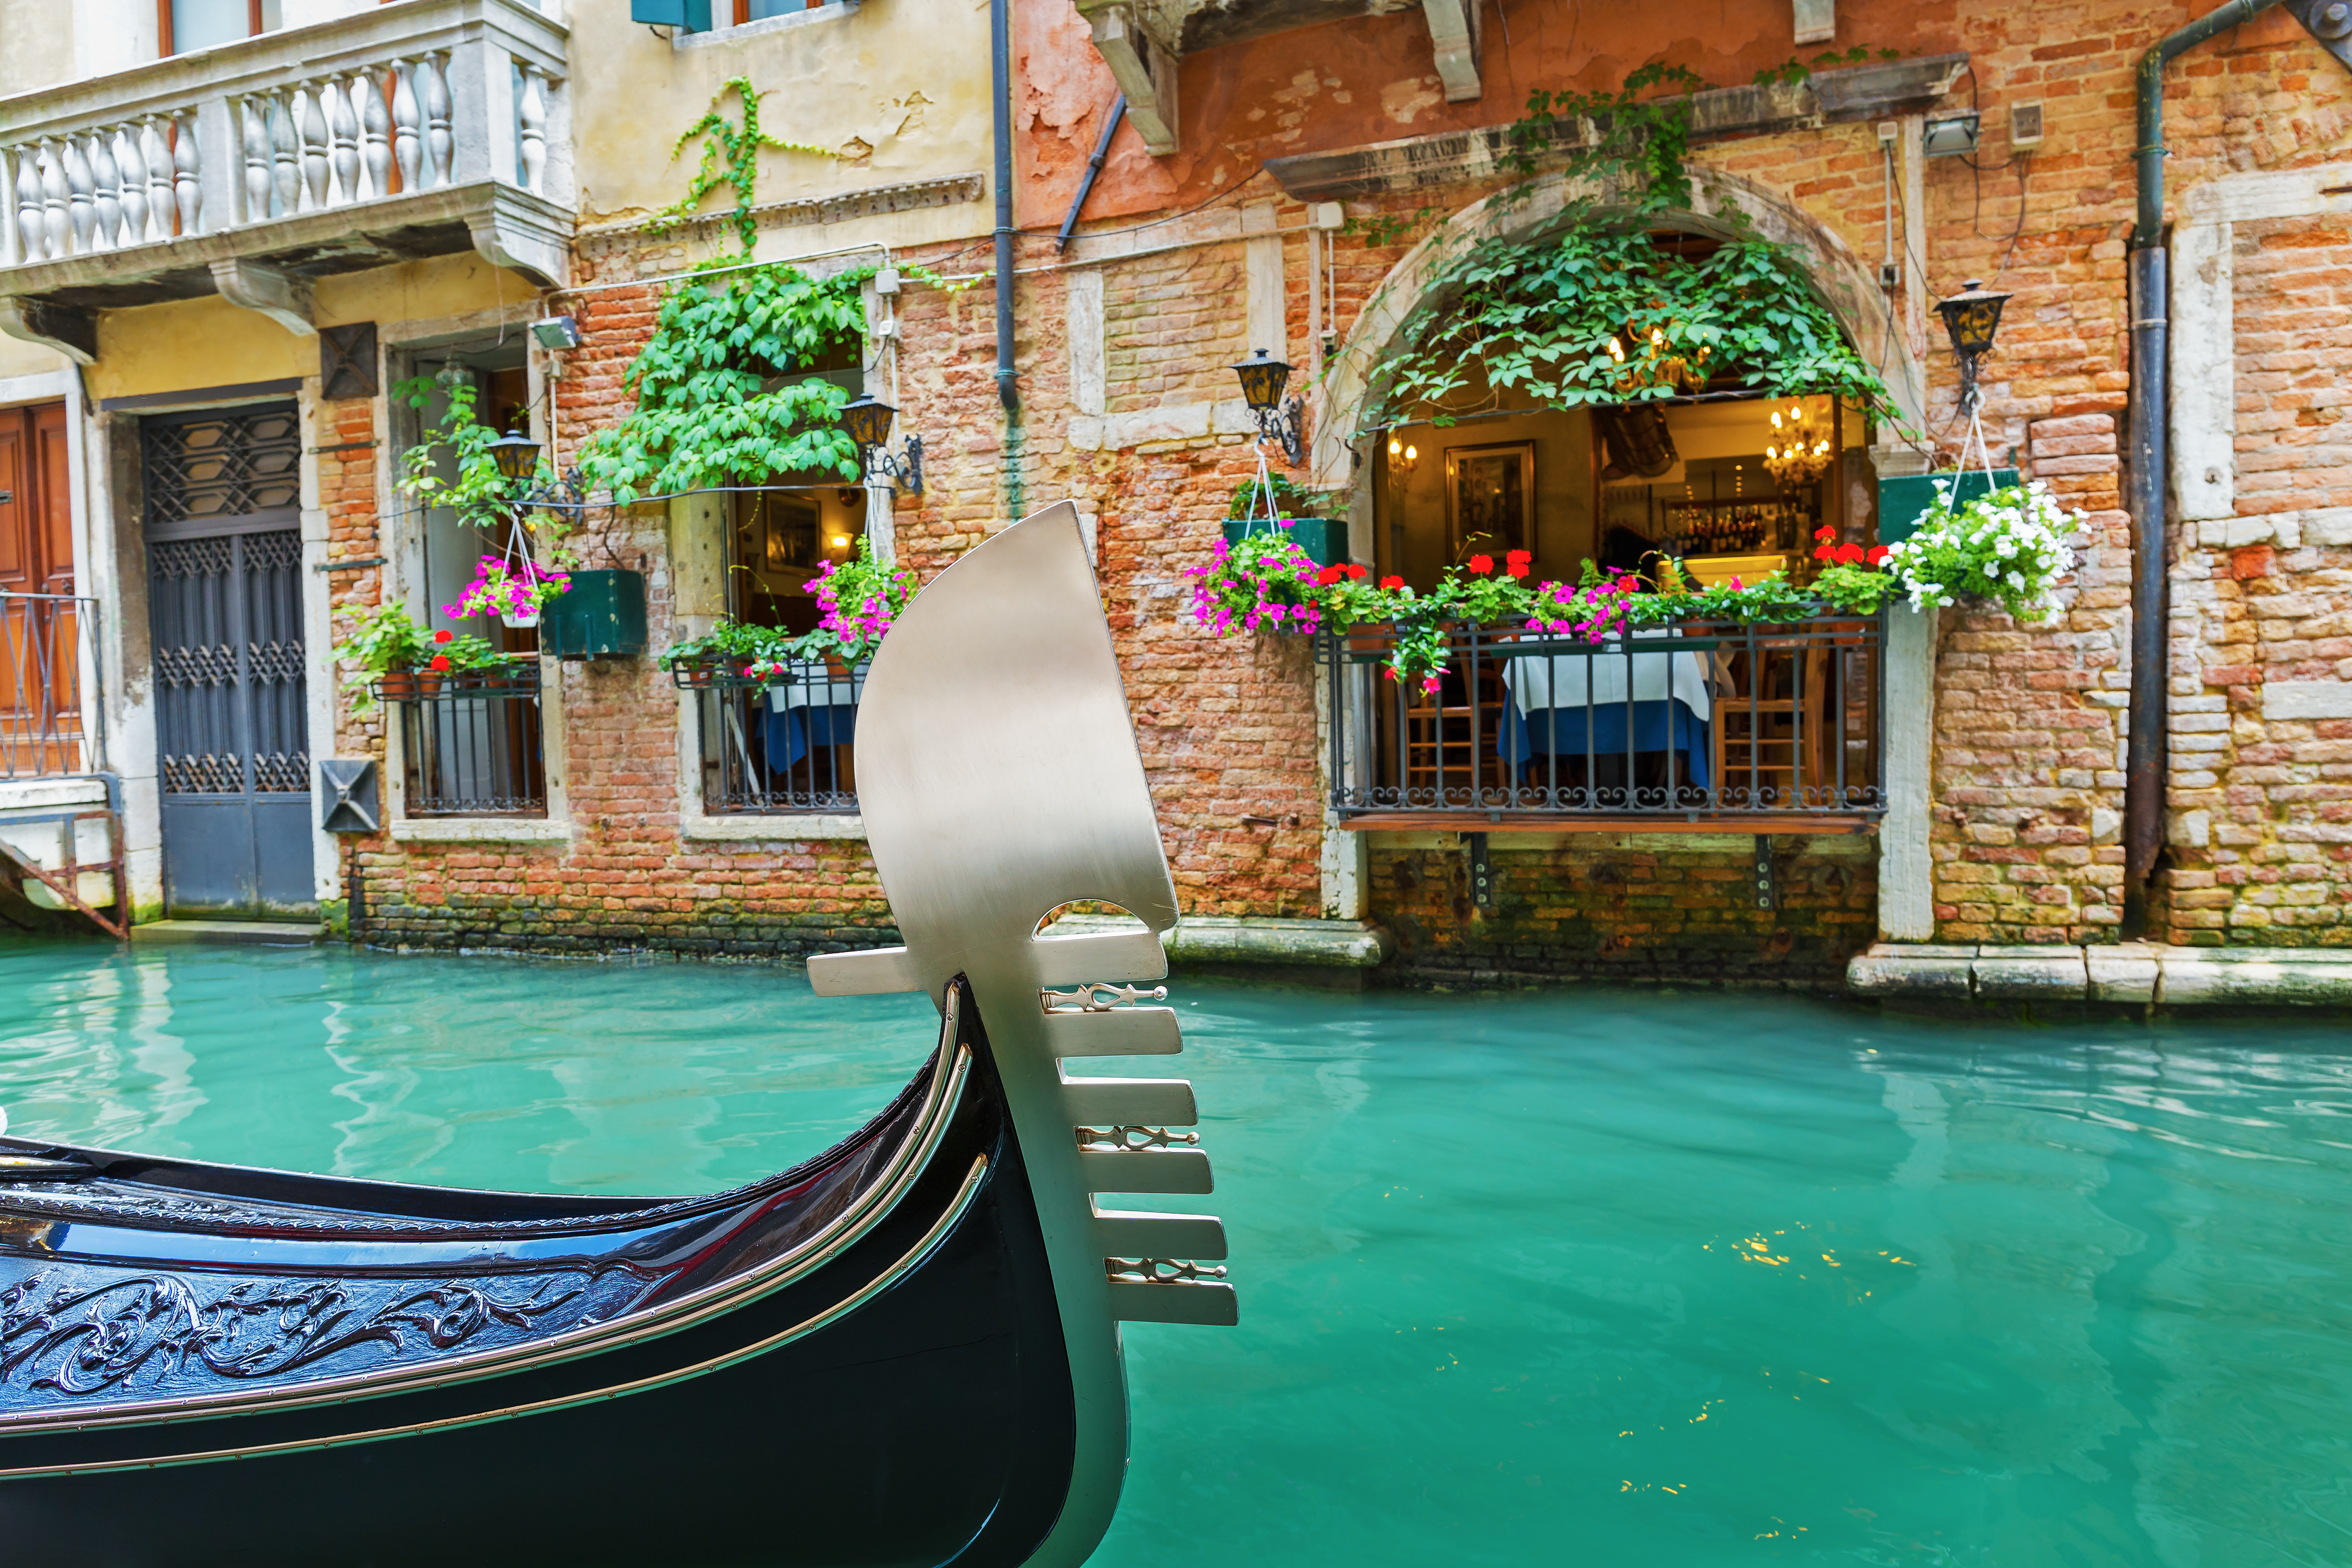 Venice Holidays 2018 : Package & save up to 13% – ebookers.ie